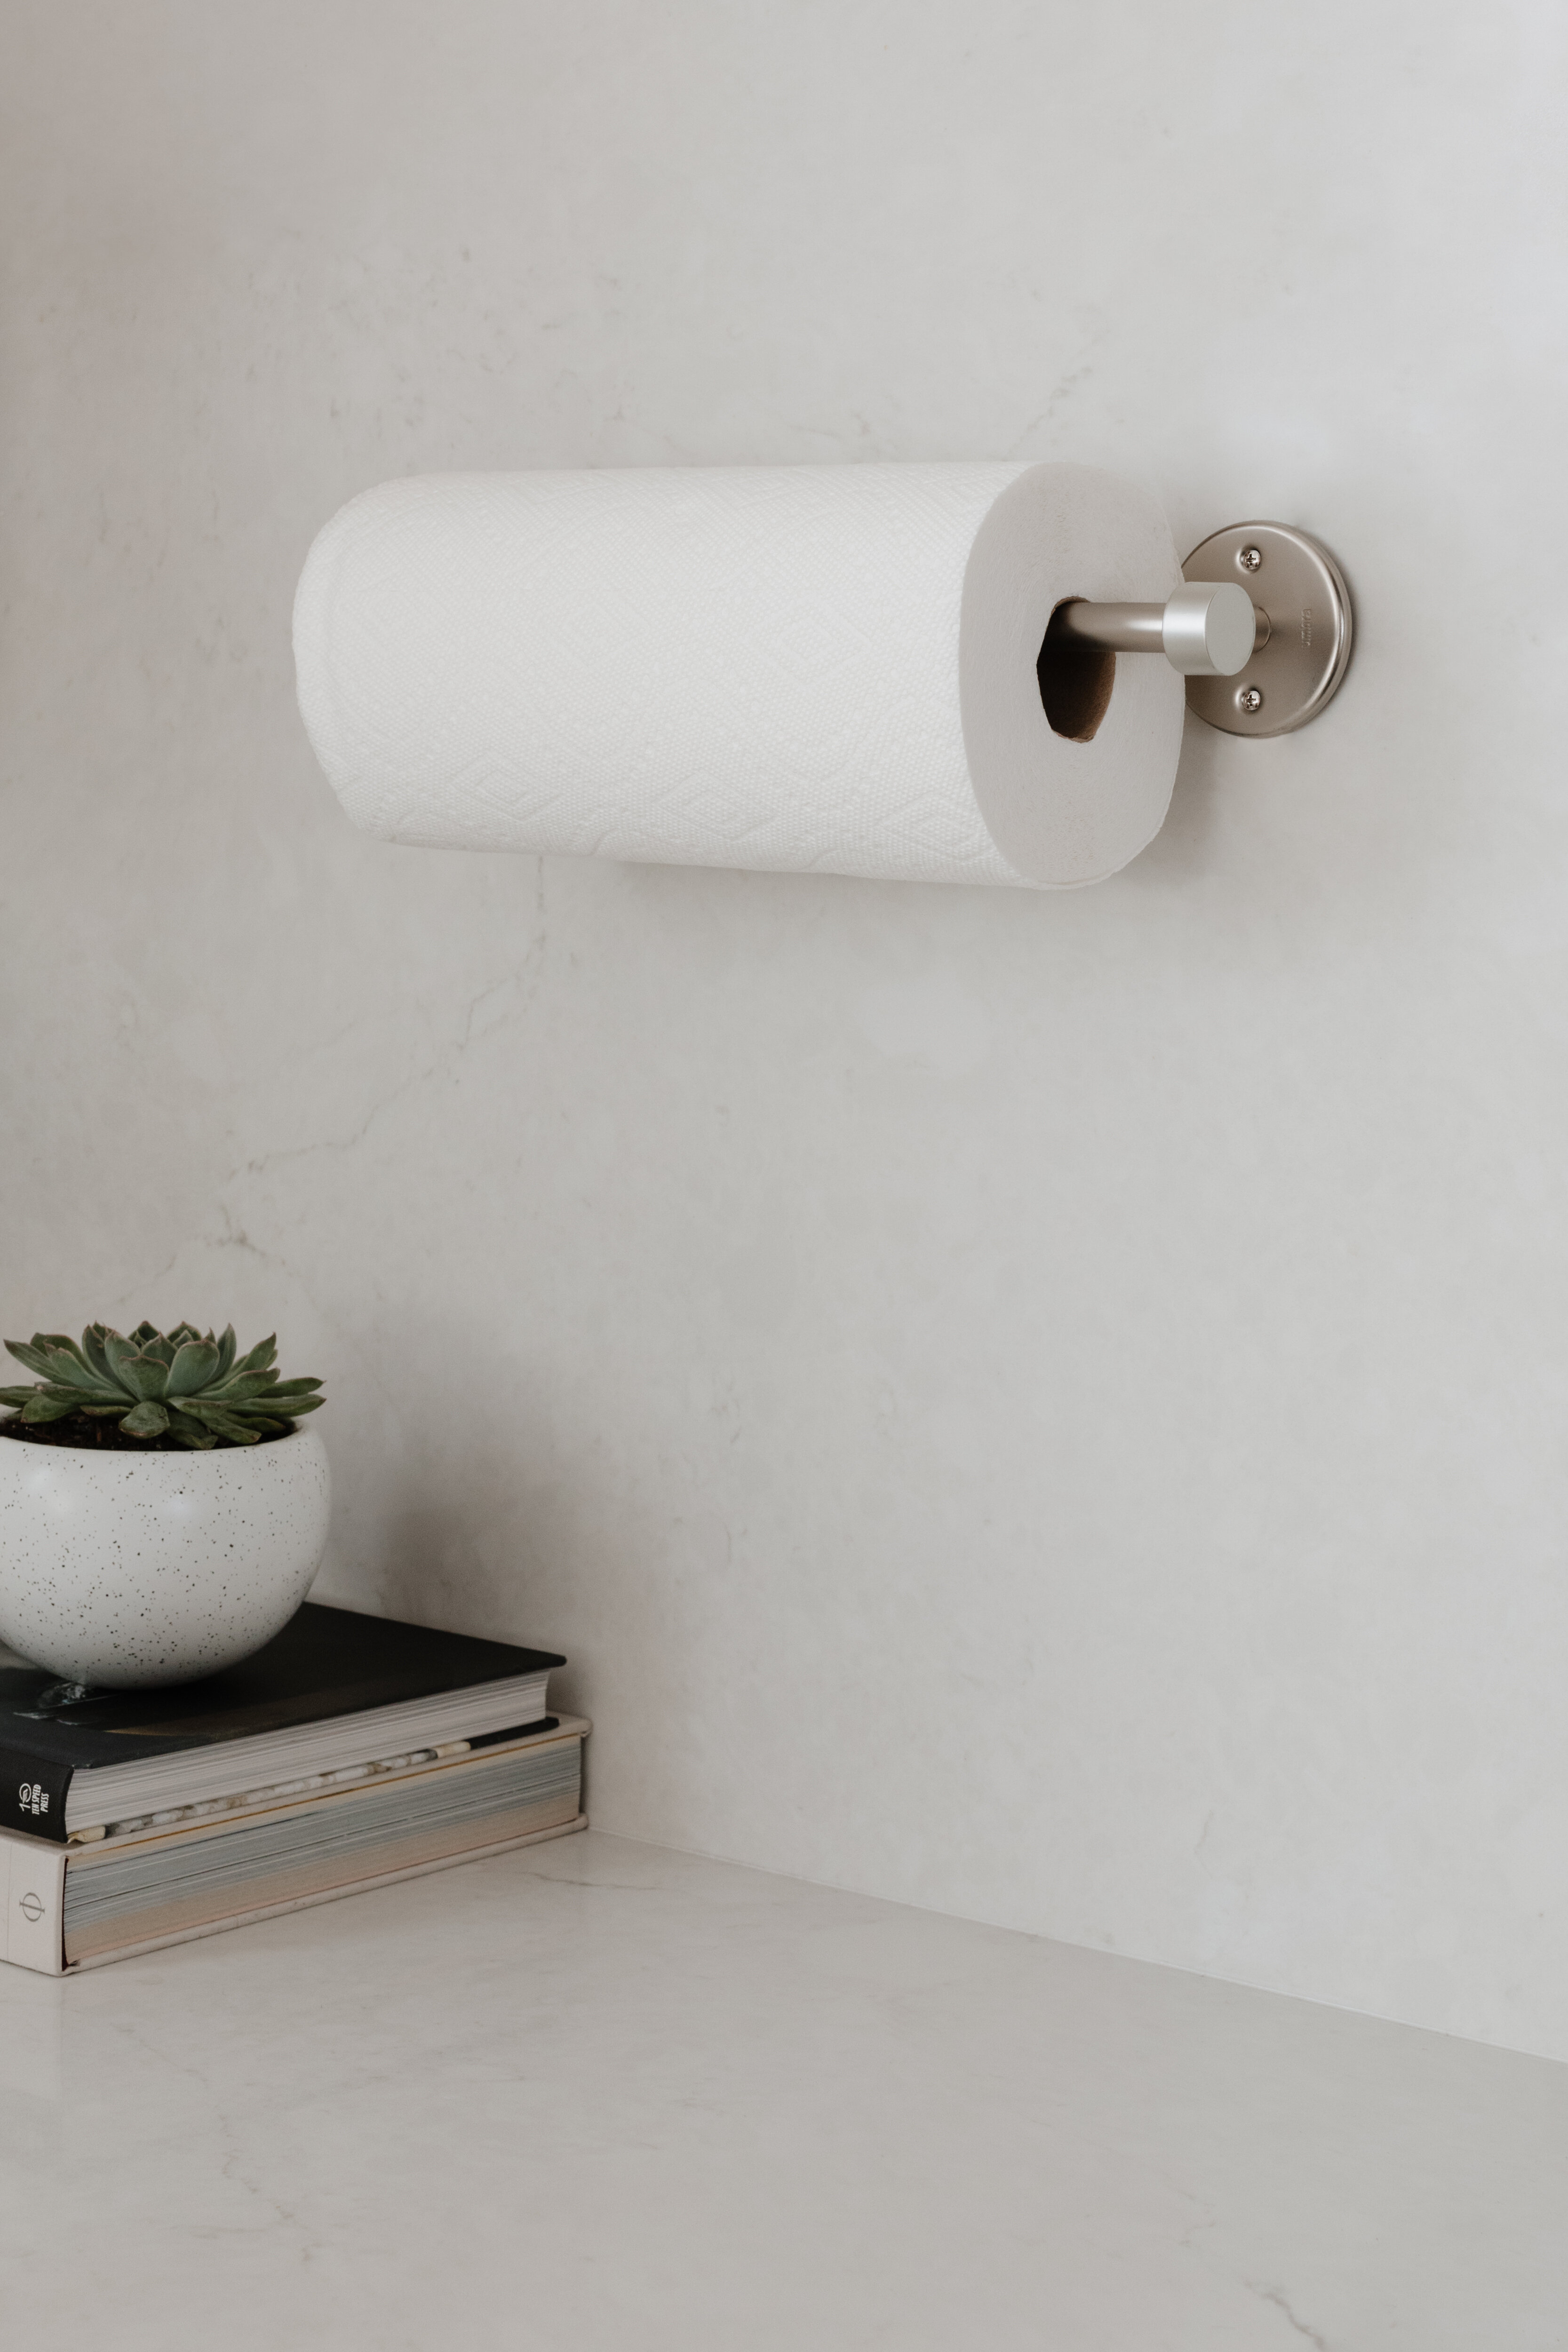 Ca Wall Mounted Paper Towel Holder